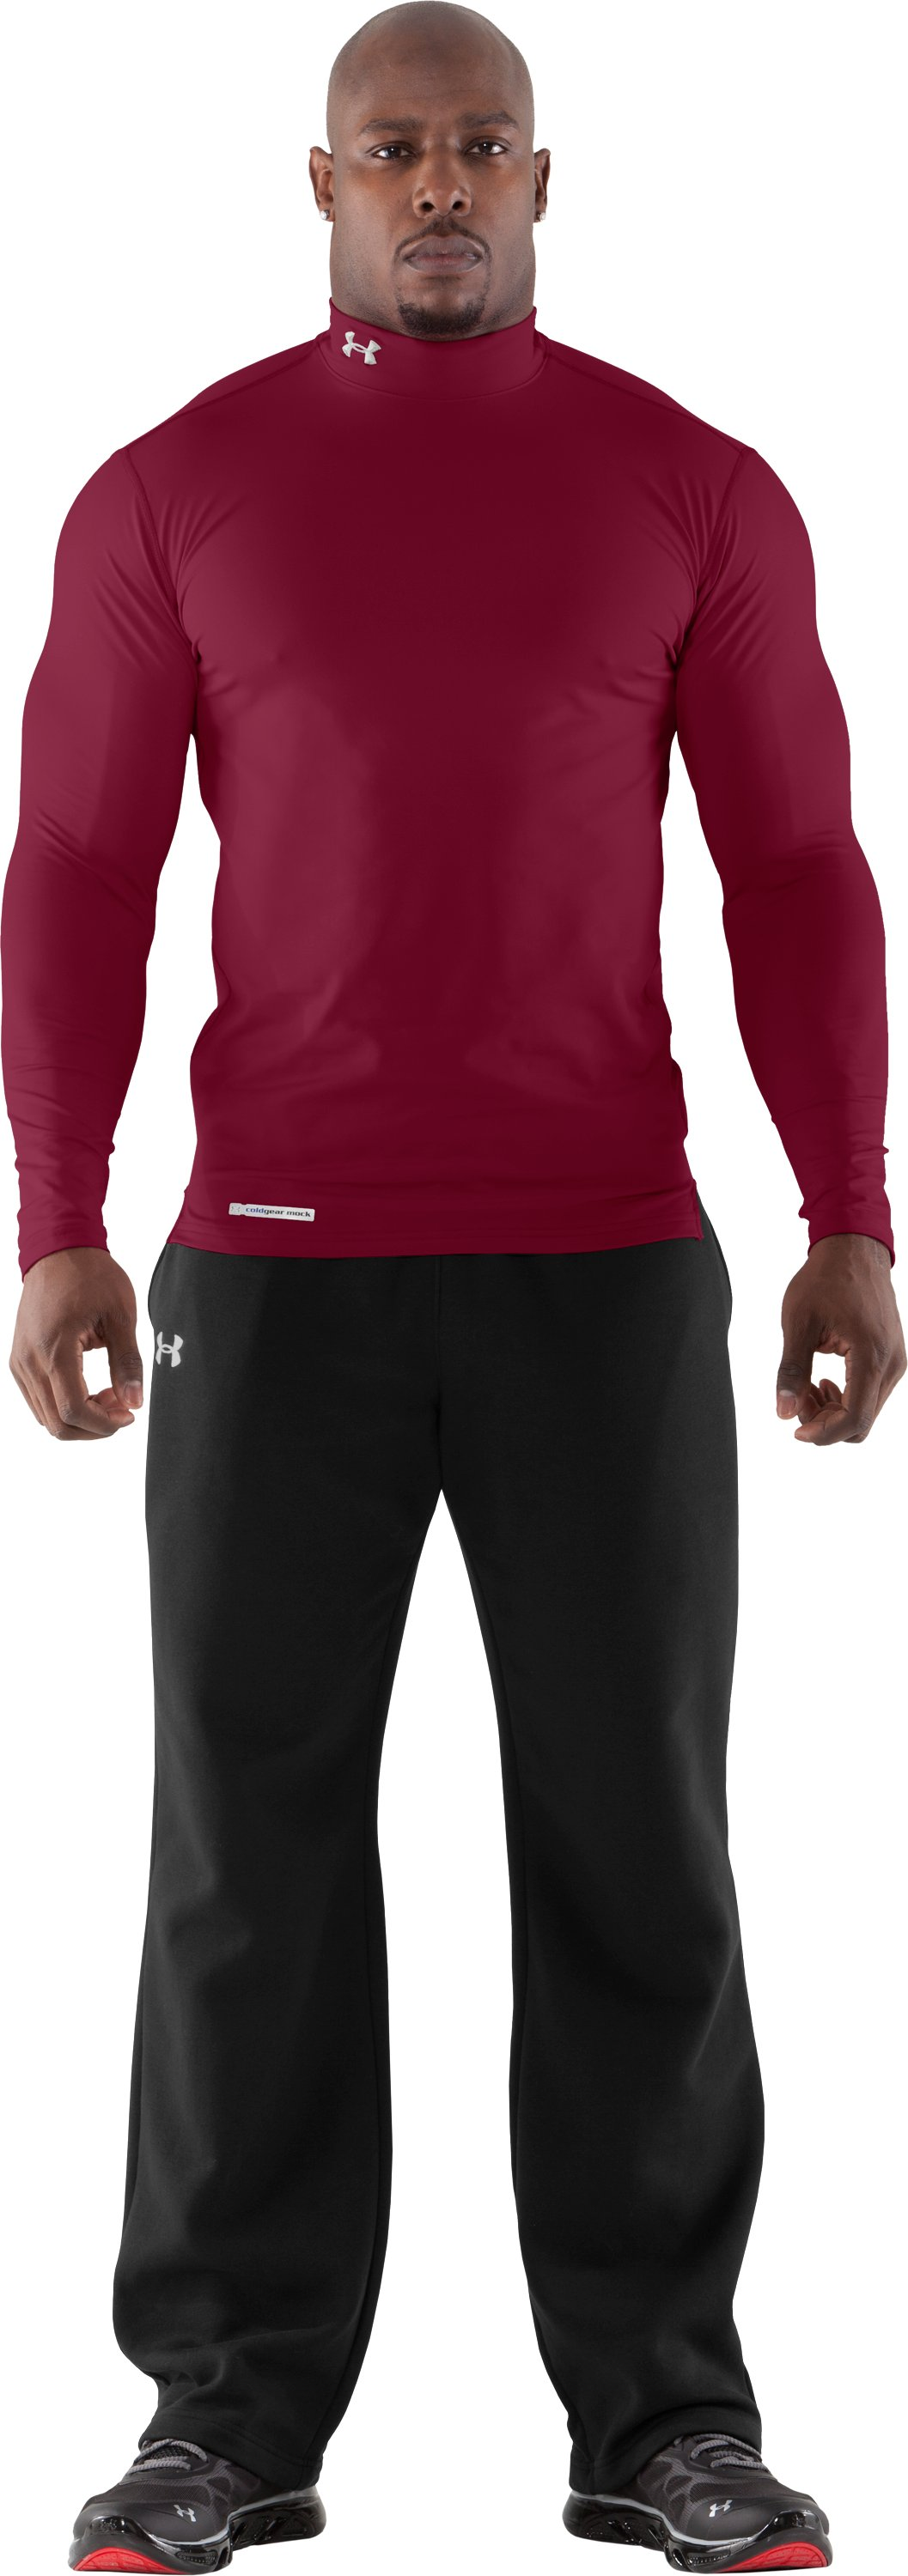 Men's ColdGear® Fitted Long Sleeve Mock, Maroon